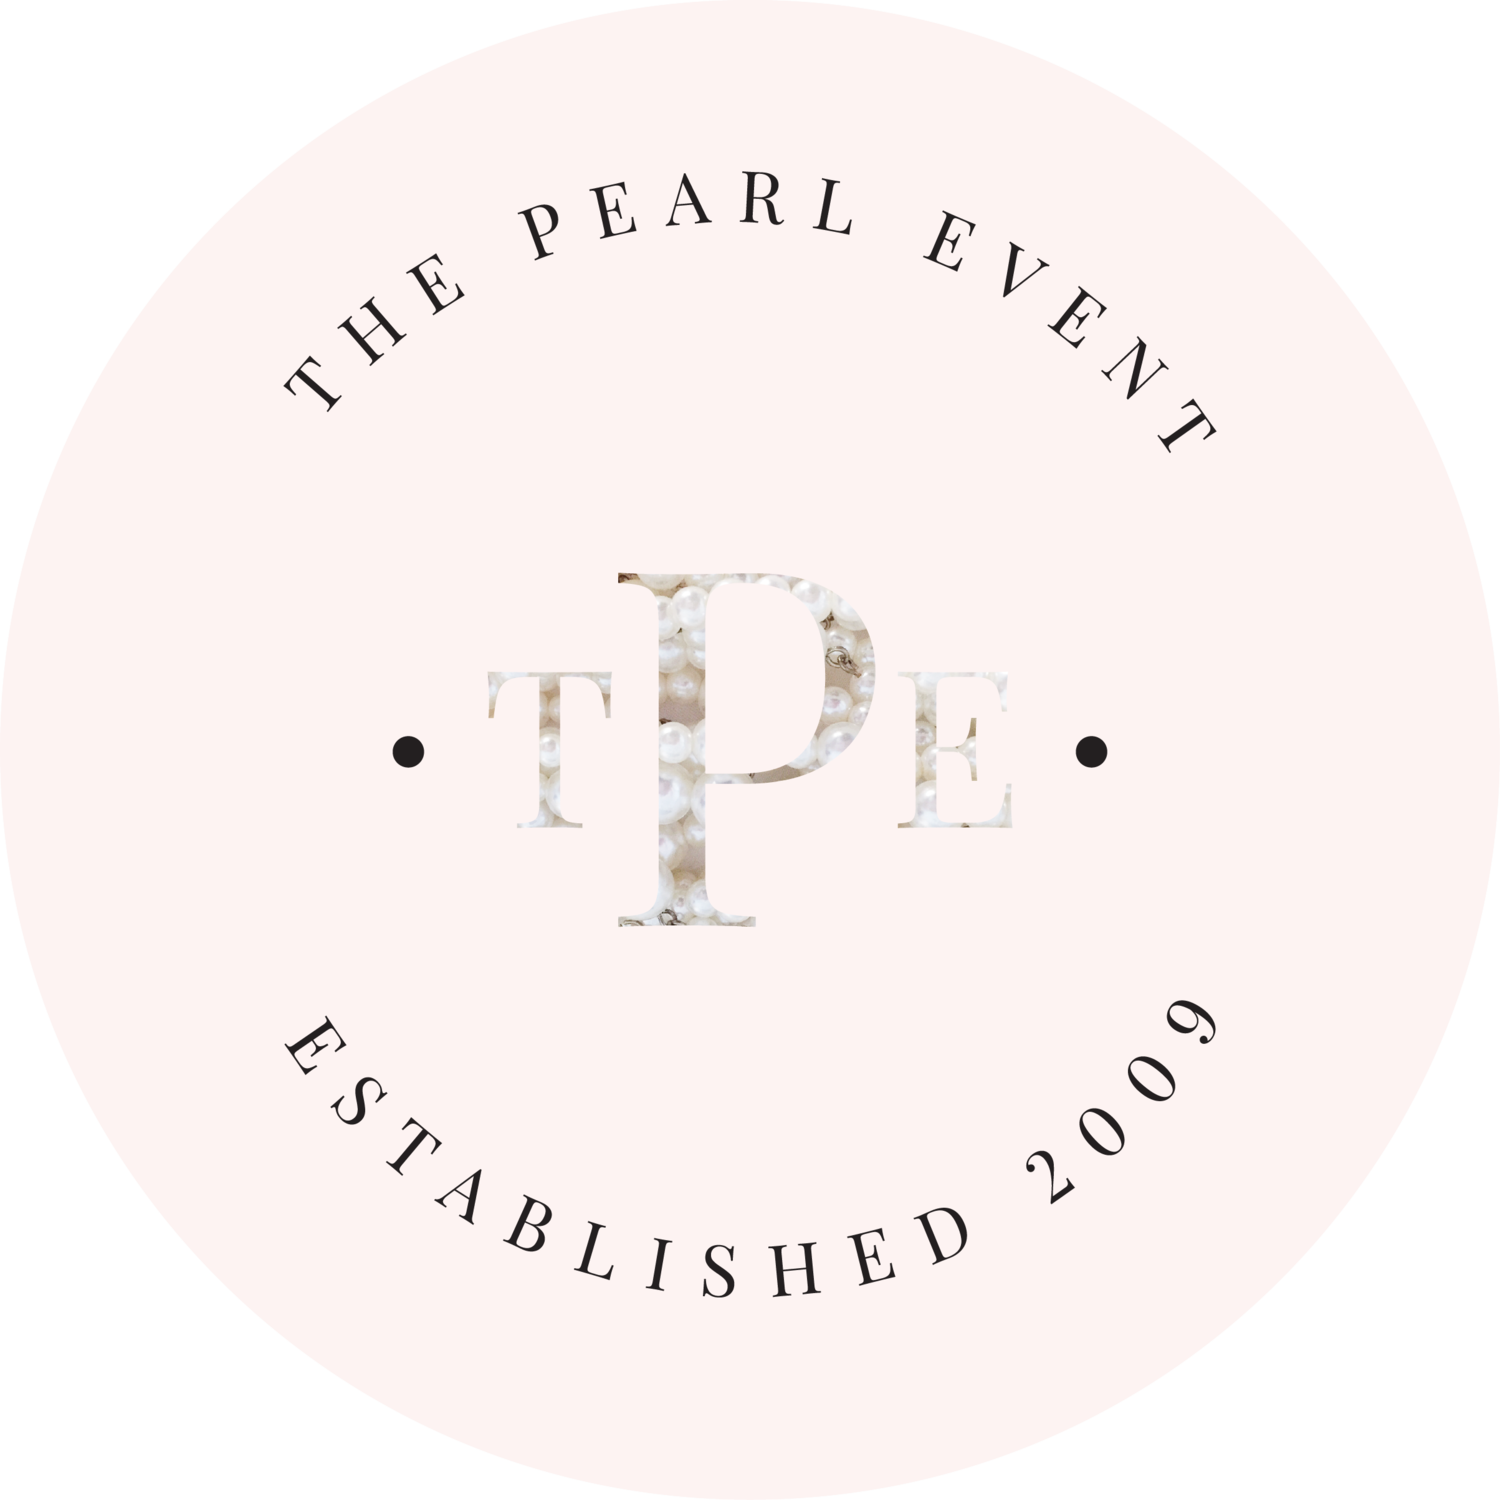 The Pearl Event